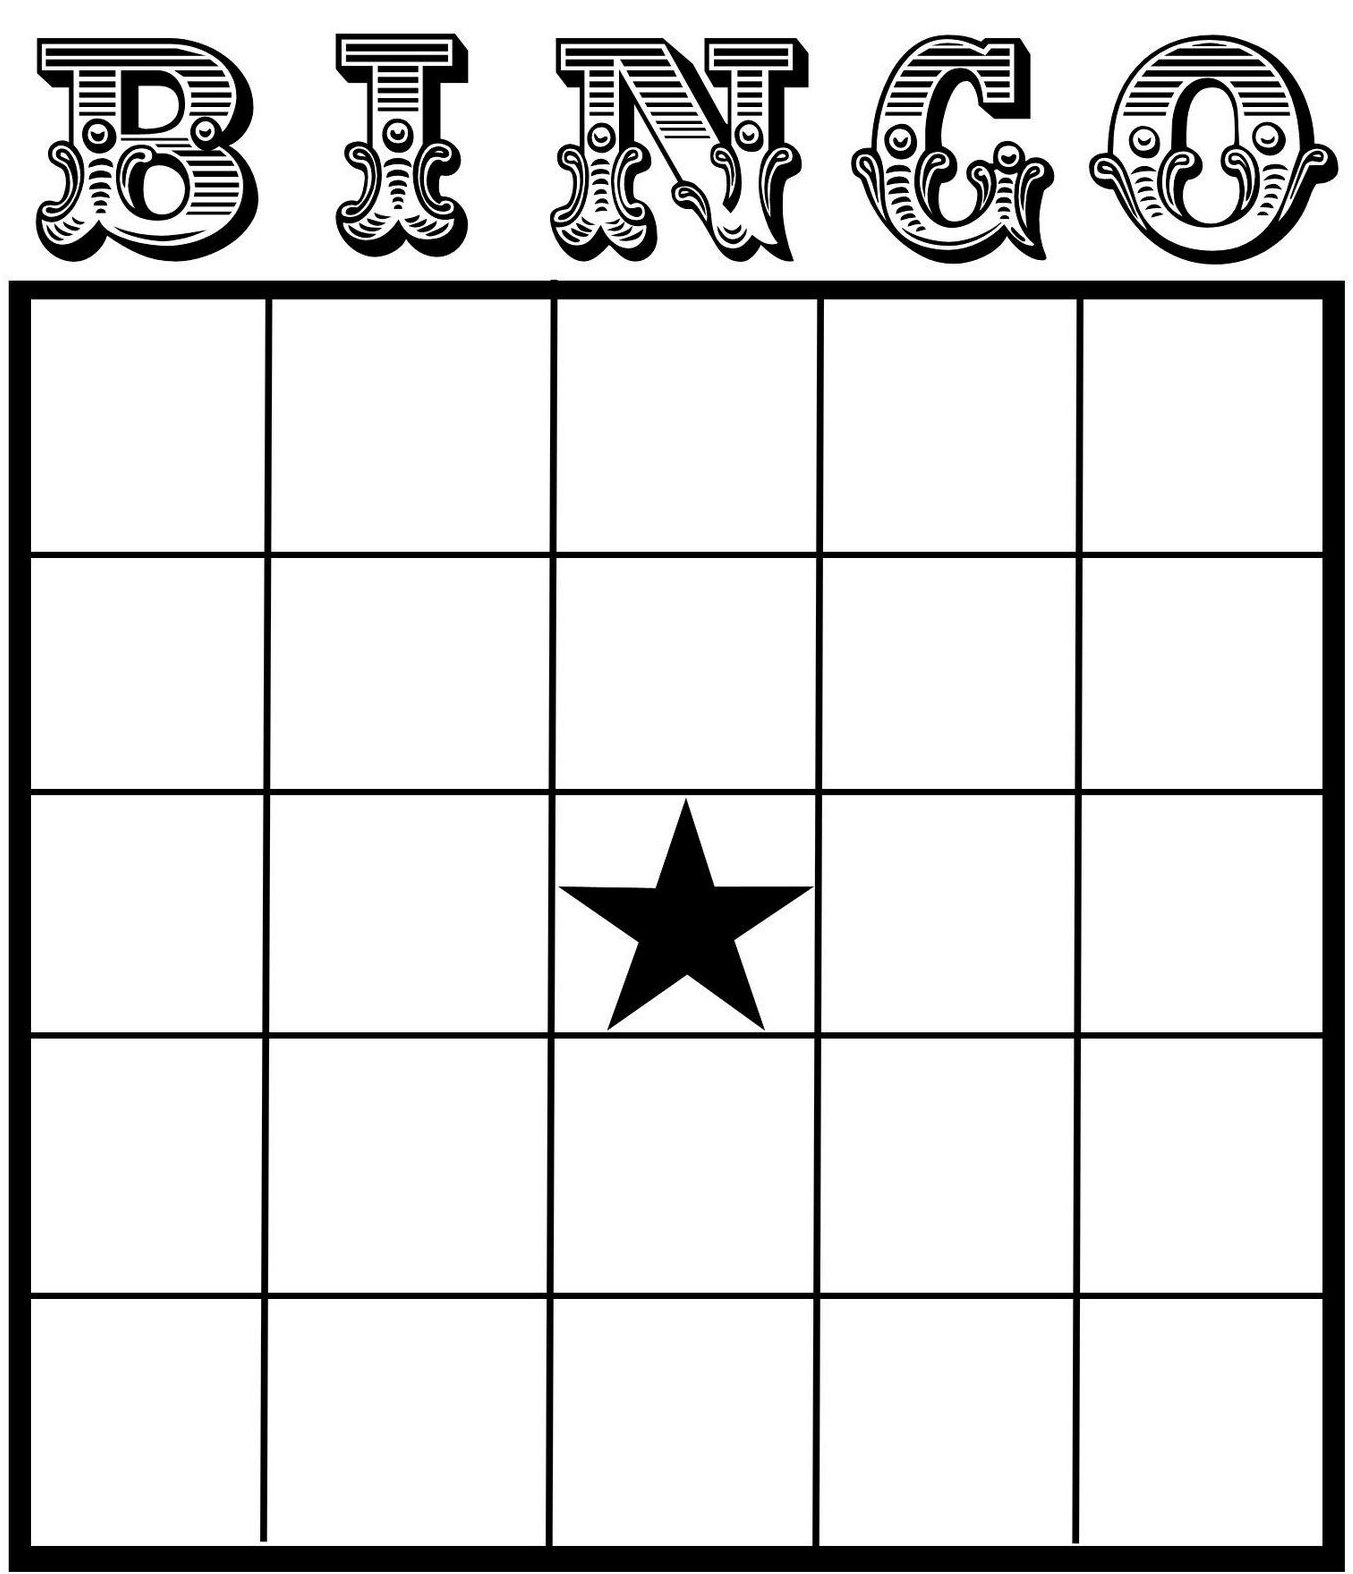 Free Printable Bingo Card Template - Set Your Plan & Tasks